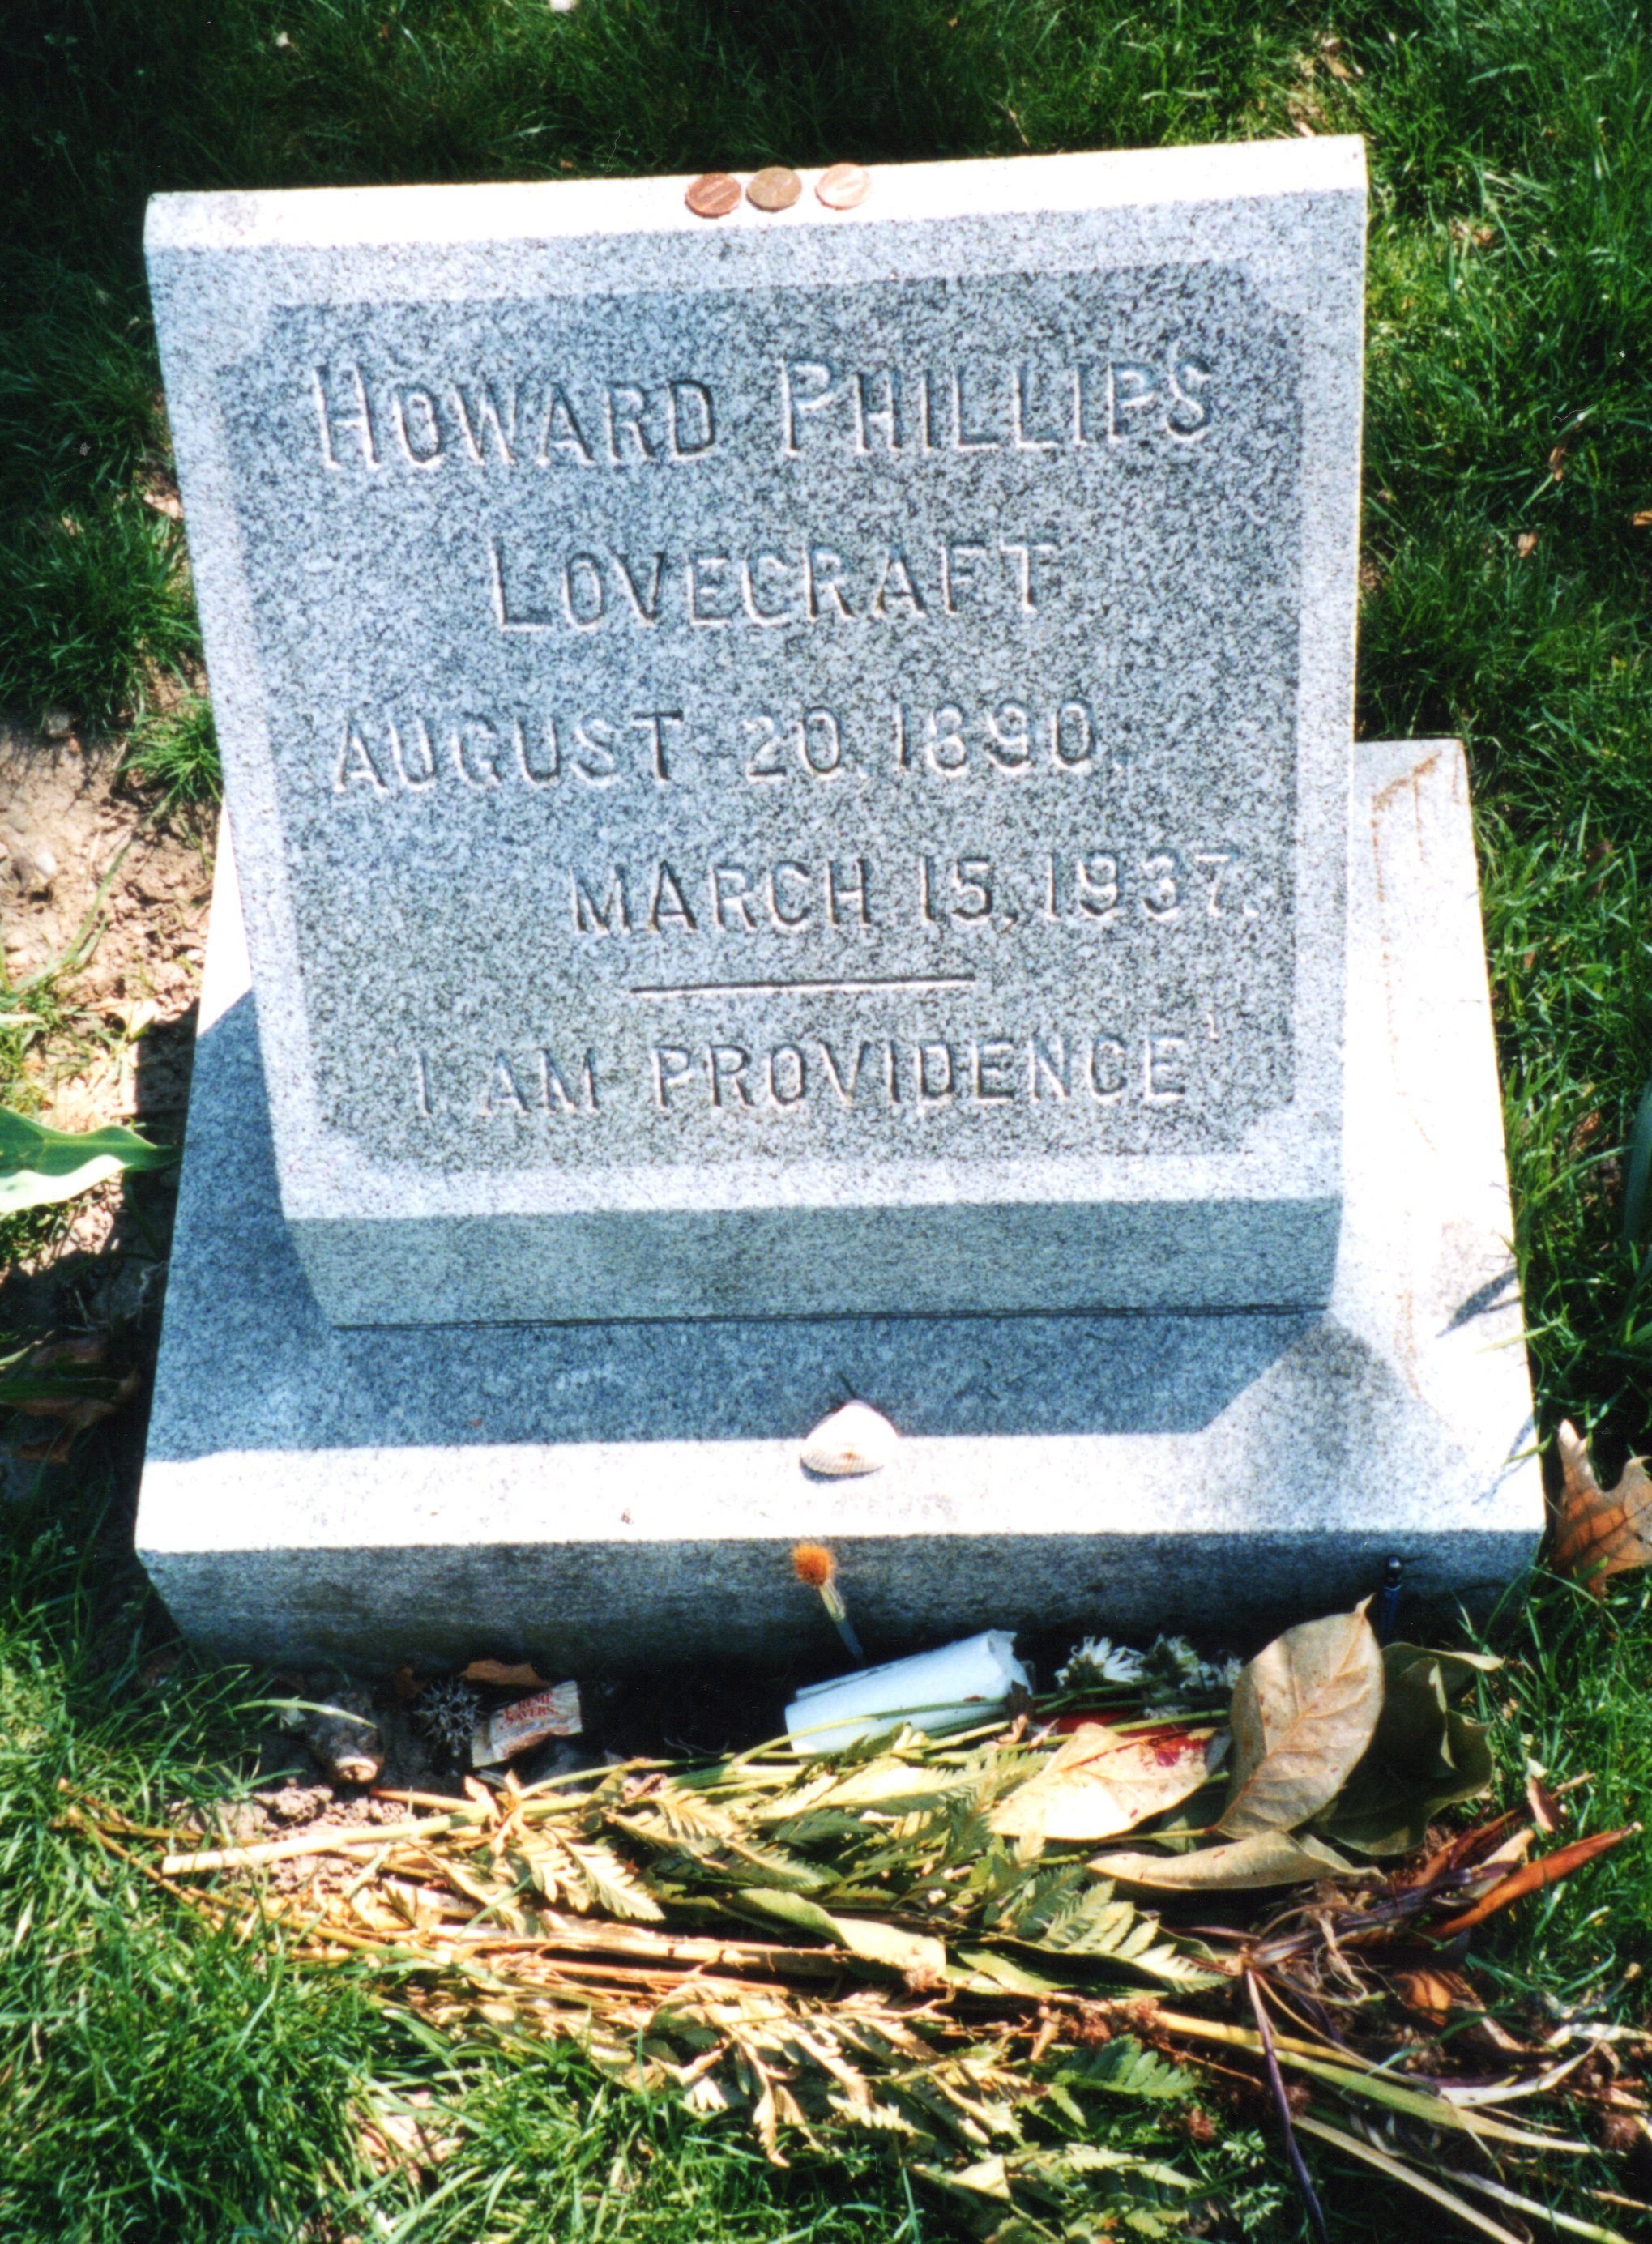 H. P. Lovecraft's grave in Providence (via Cemetery Travel)